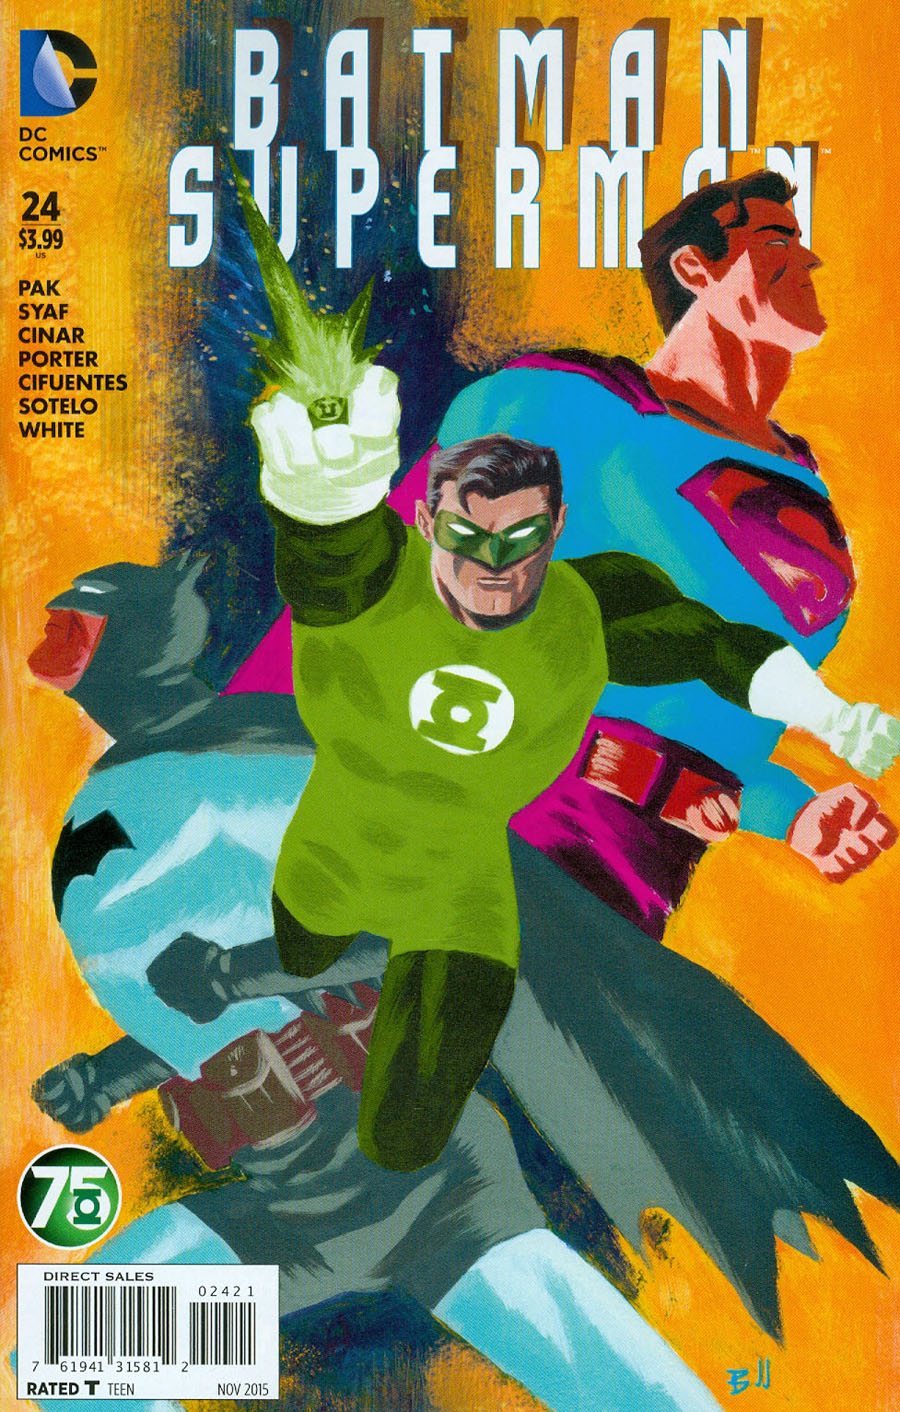 Batman Superman #24 Cover B Variant Dave Bullock Green Lantern 75th Anniversary Cover (Truth Tie-In)